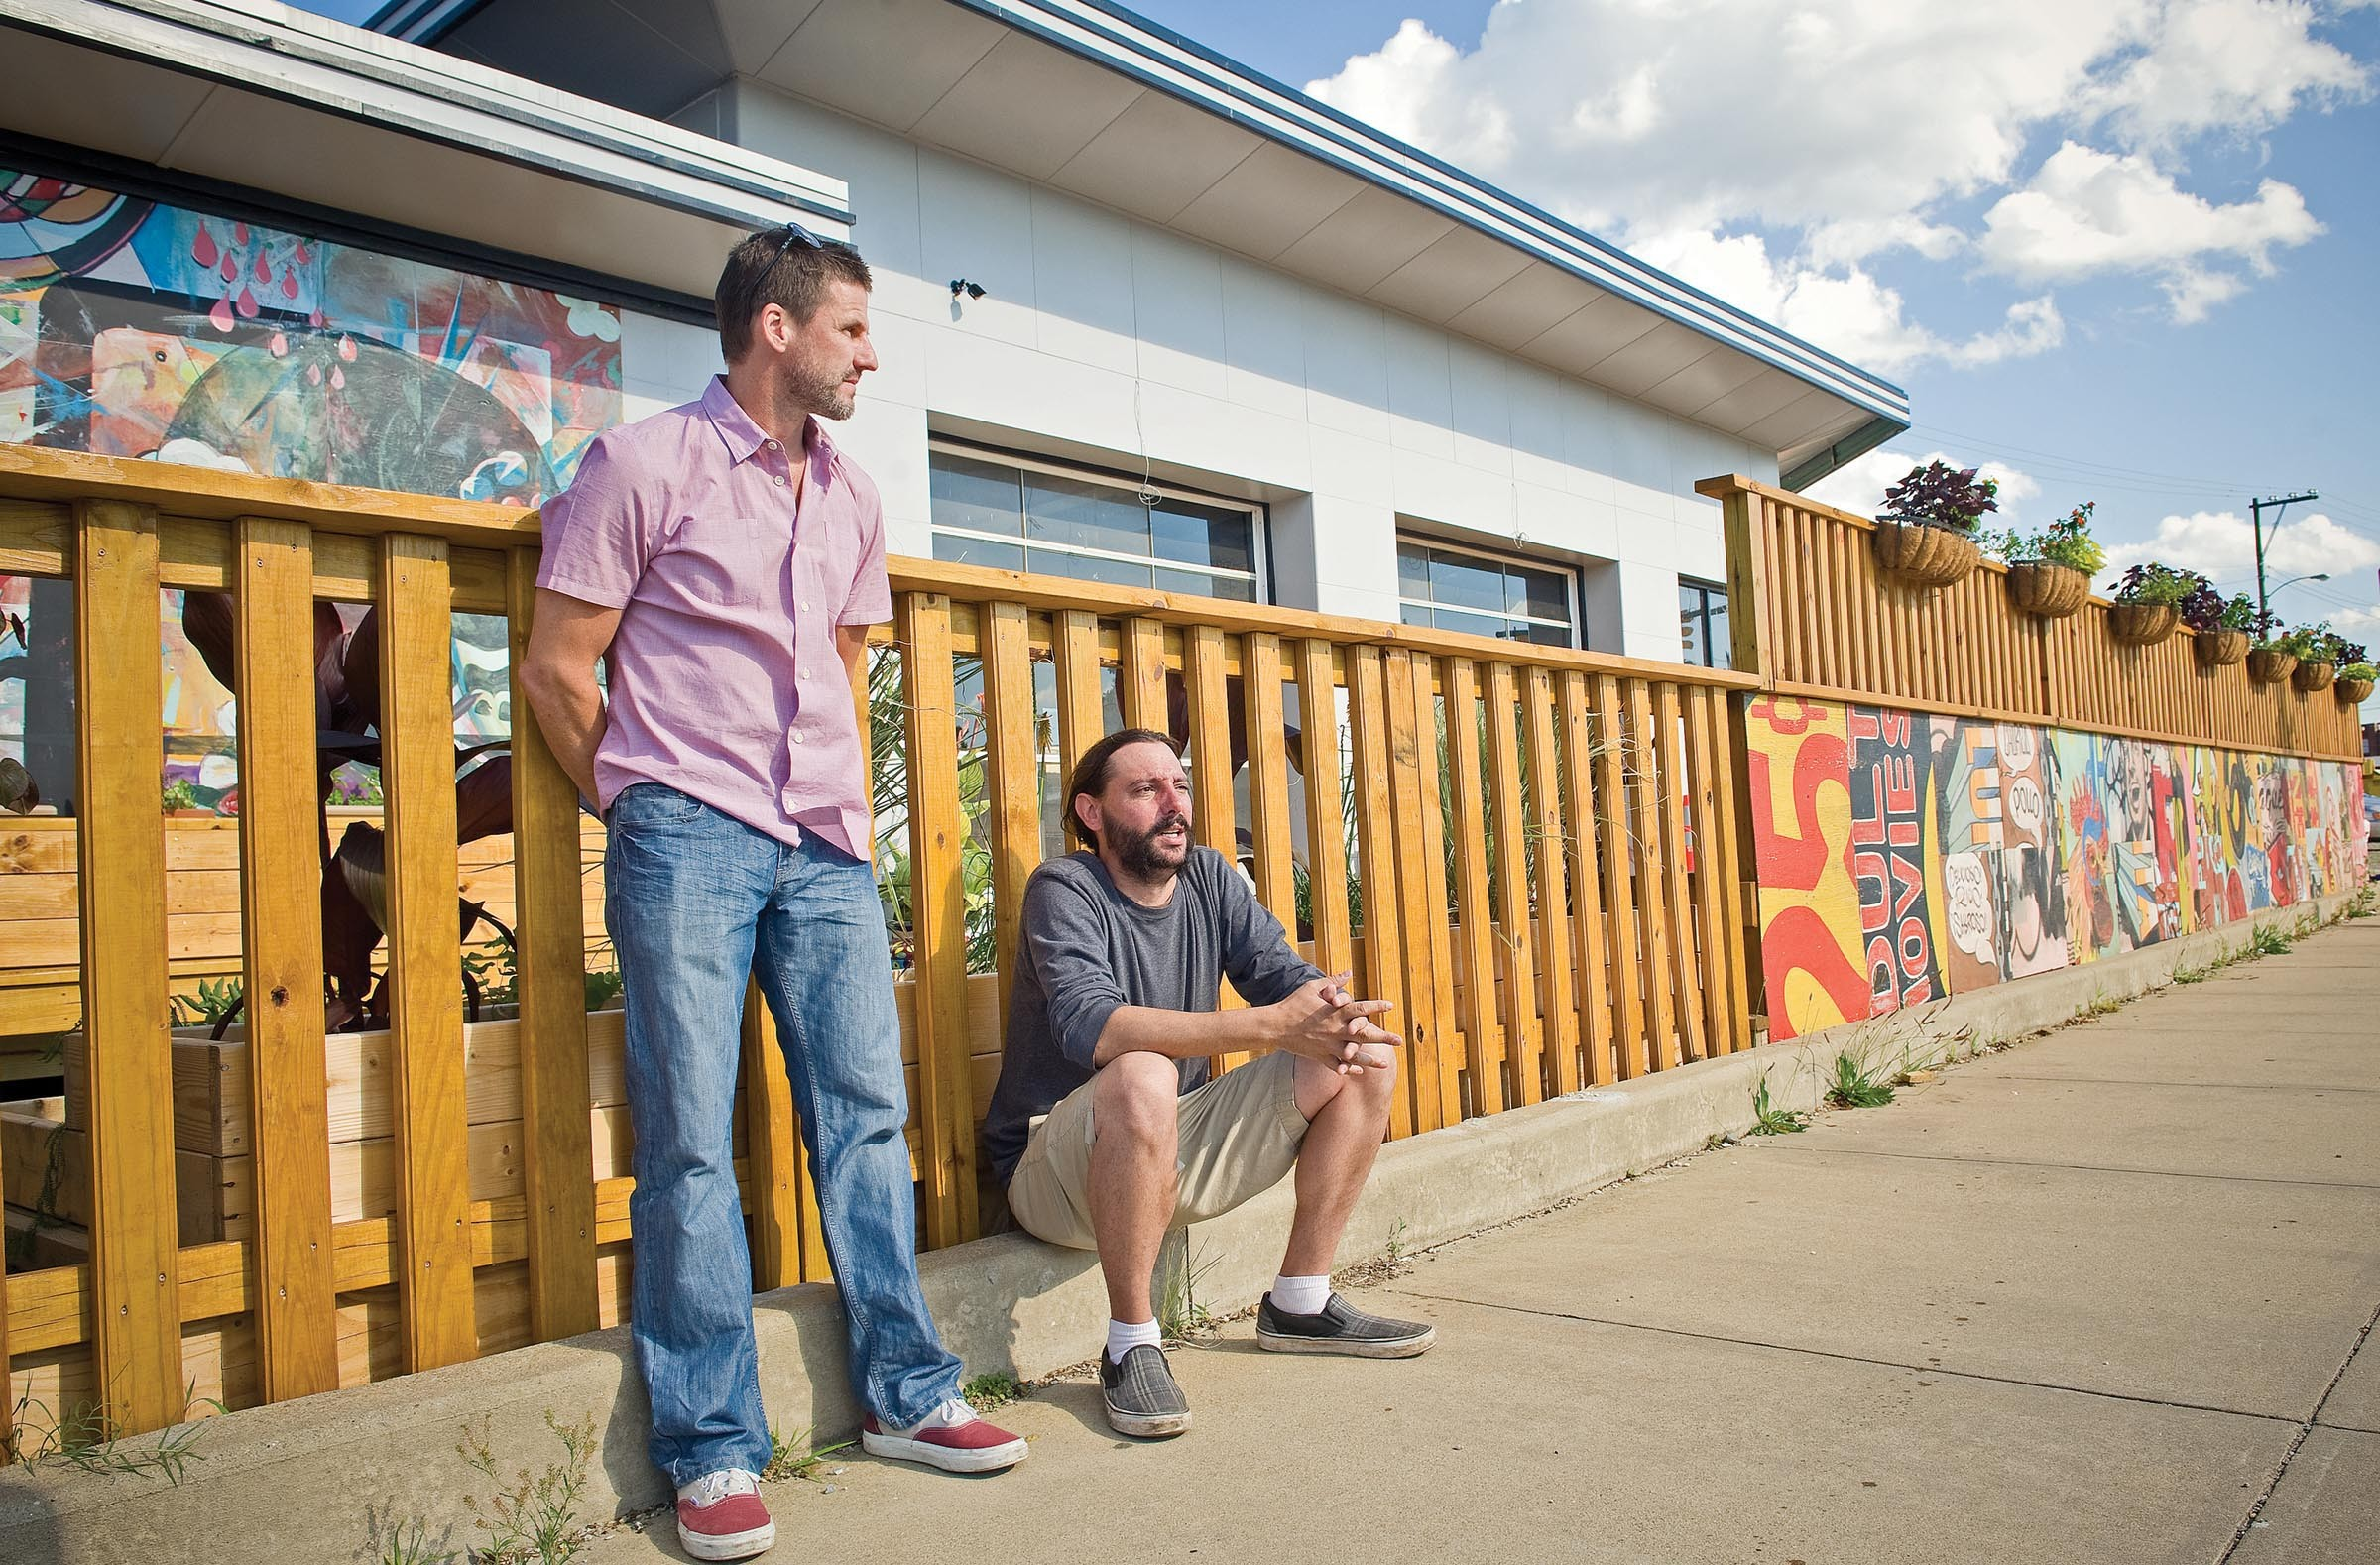 Randy O'Dell and Patrick Stamper helped add color and life to a blighted strip along the Boulevard by opening En Su Boca with developer Charlie Diradour. - ASH DANIEL